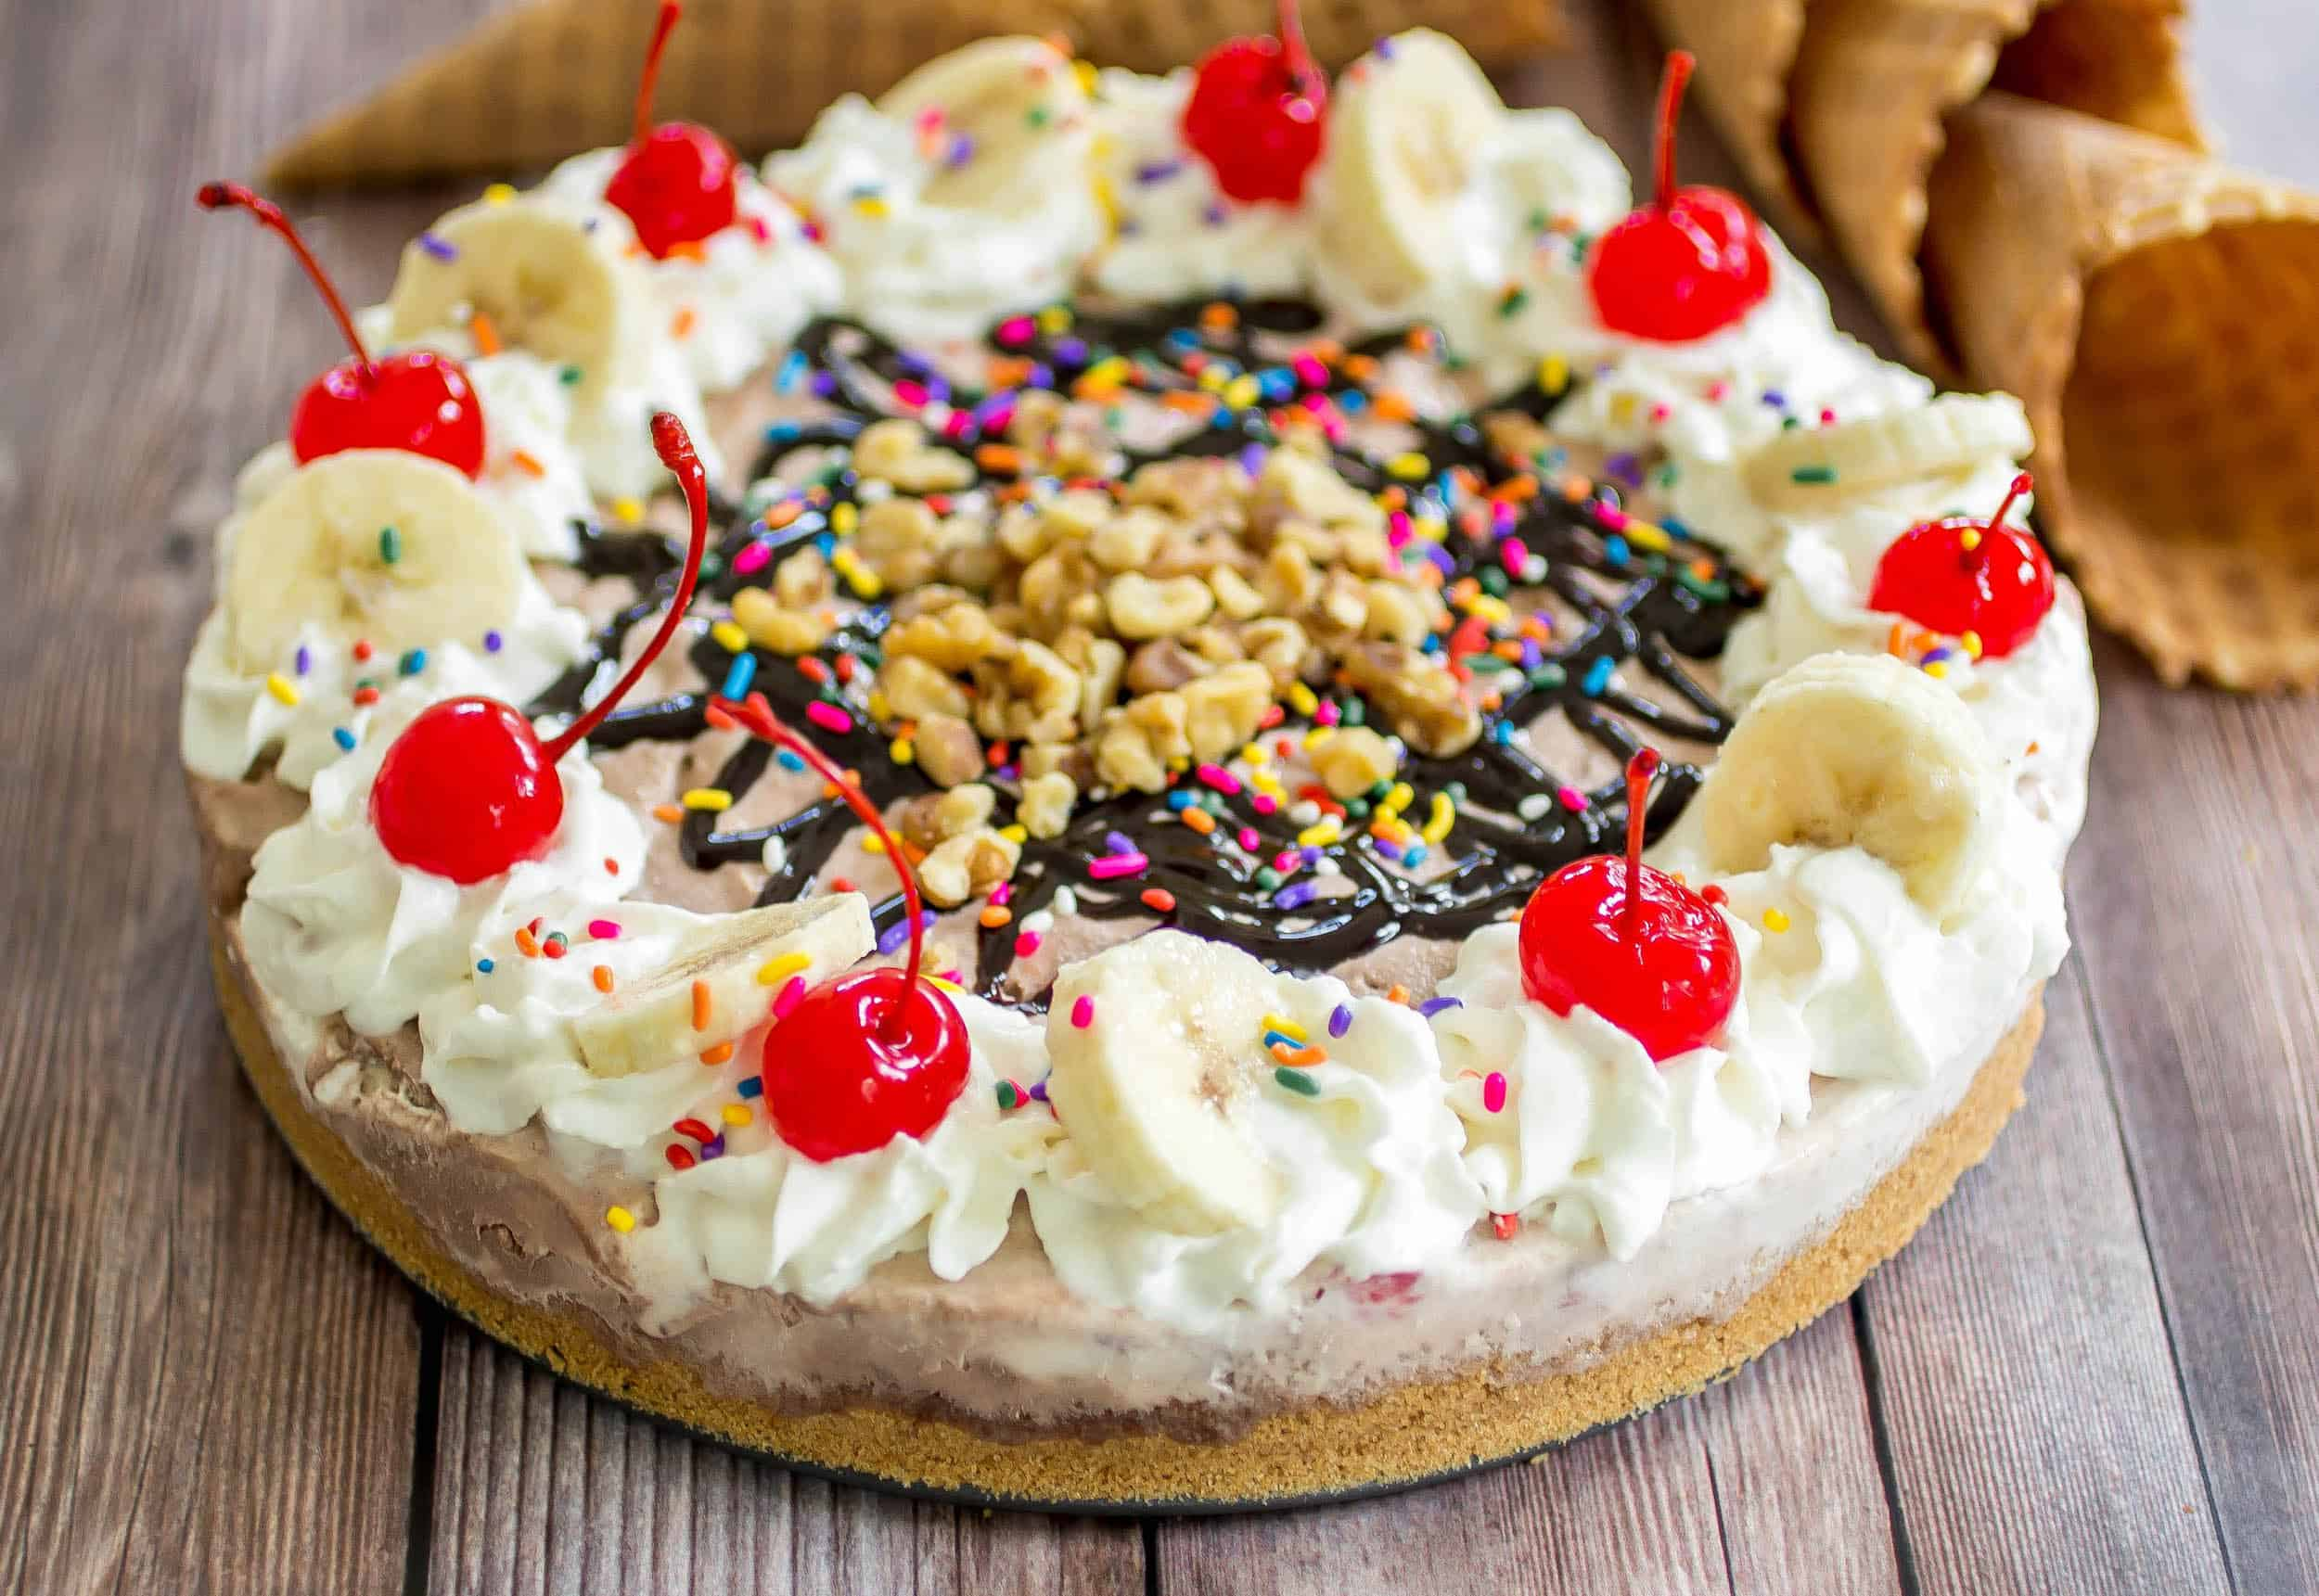 No-Bake Banana Split Ice Cream Pie - An easy and crazy delicious banana split alternative that everyone can share!